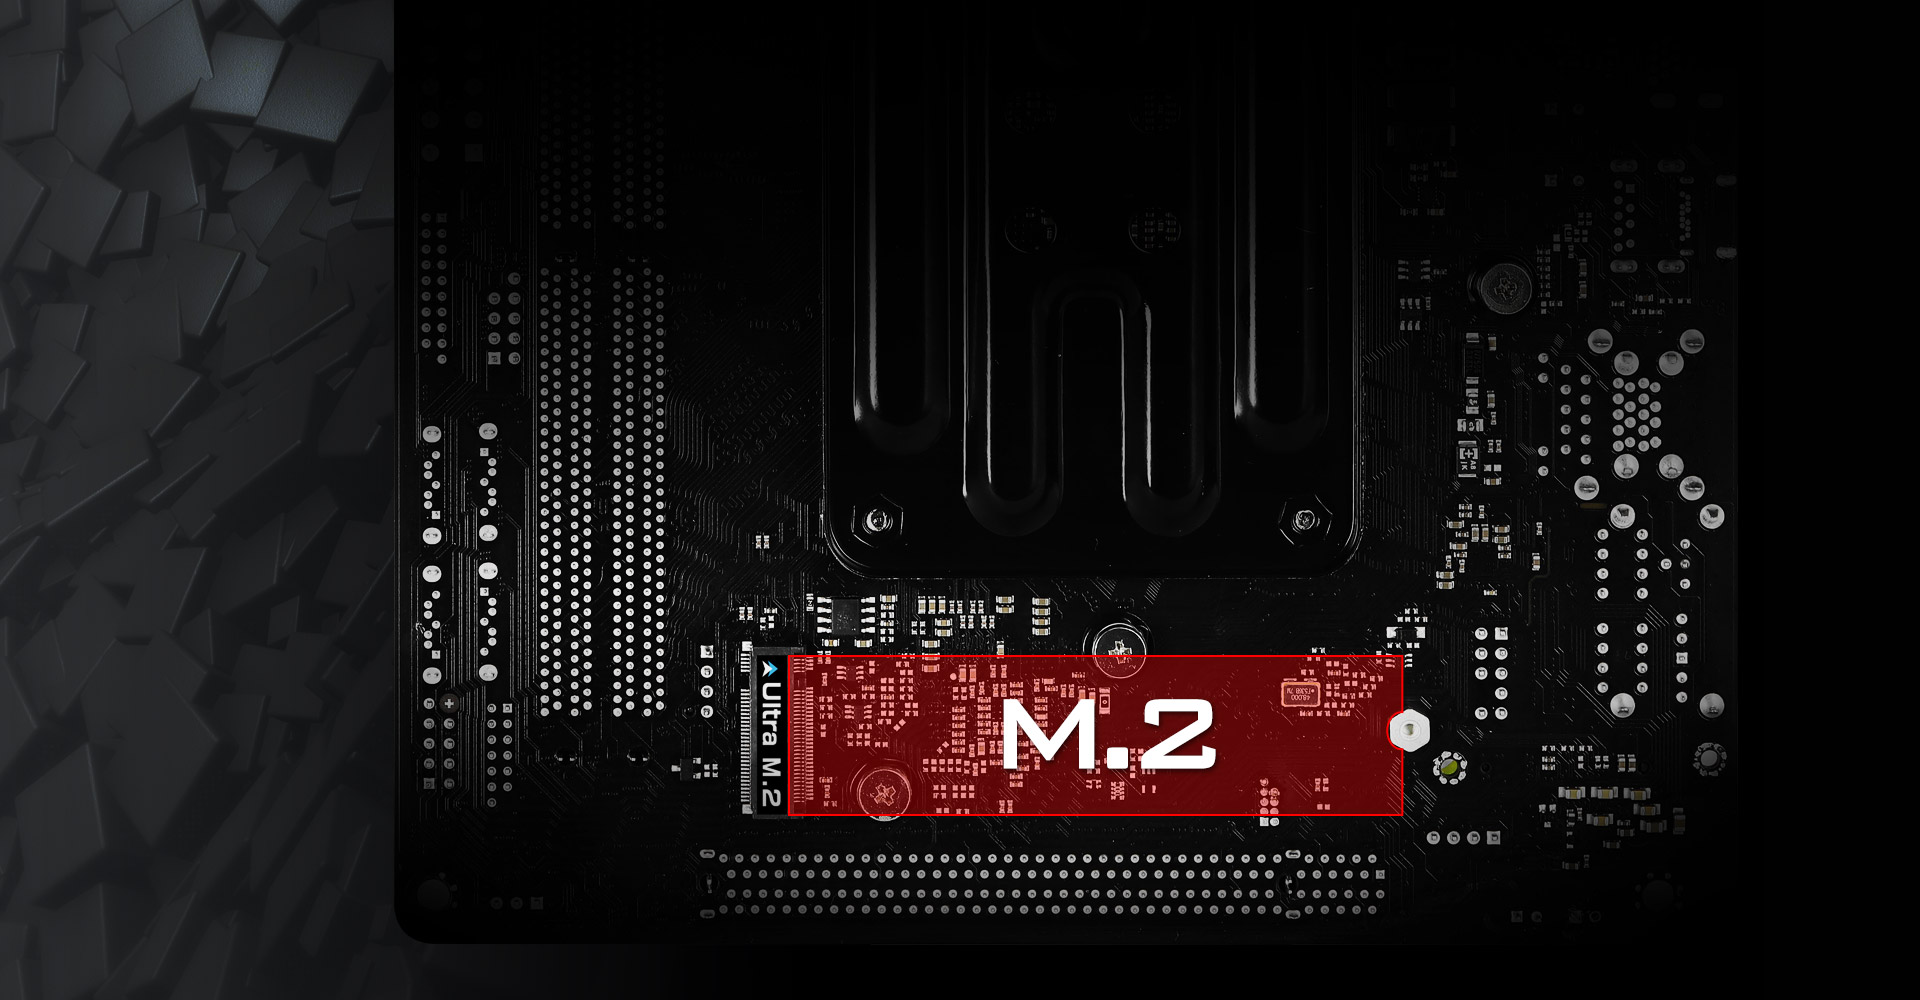 A red graphic showing an m.2 ssd can be installed on the B450 motherboard